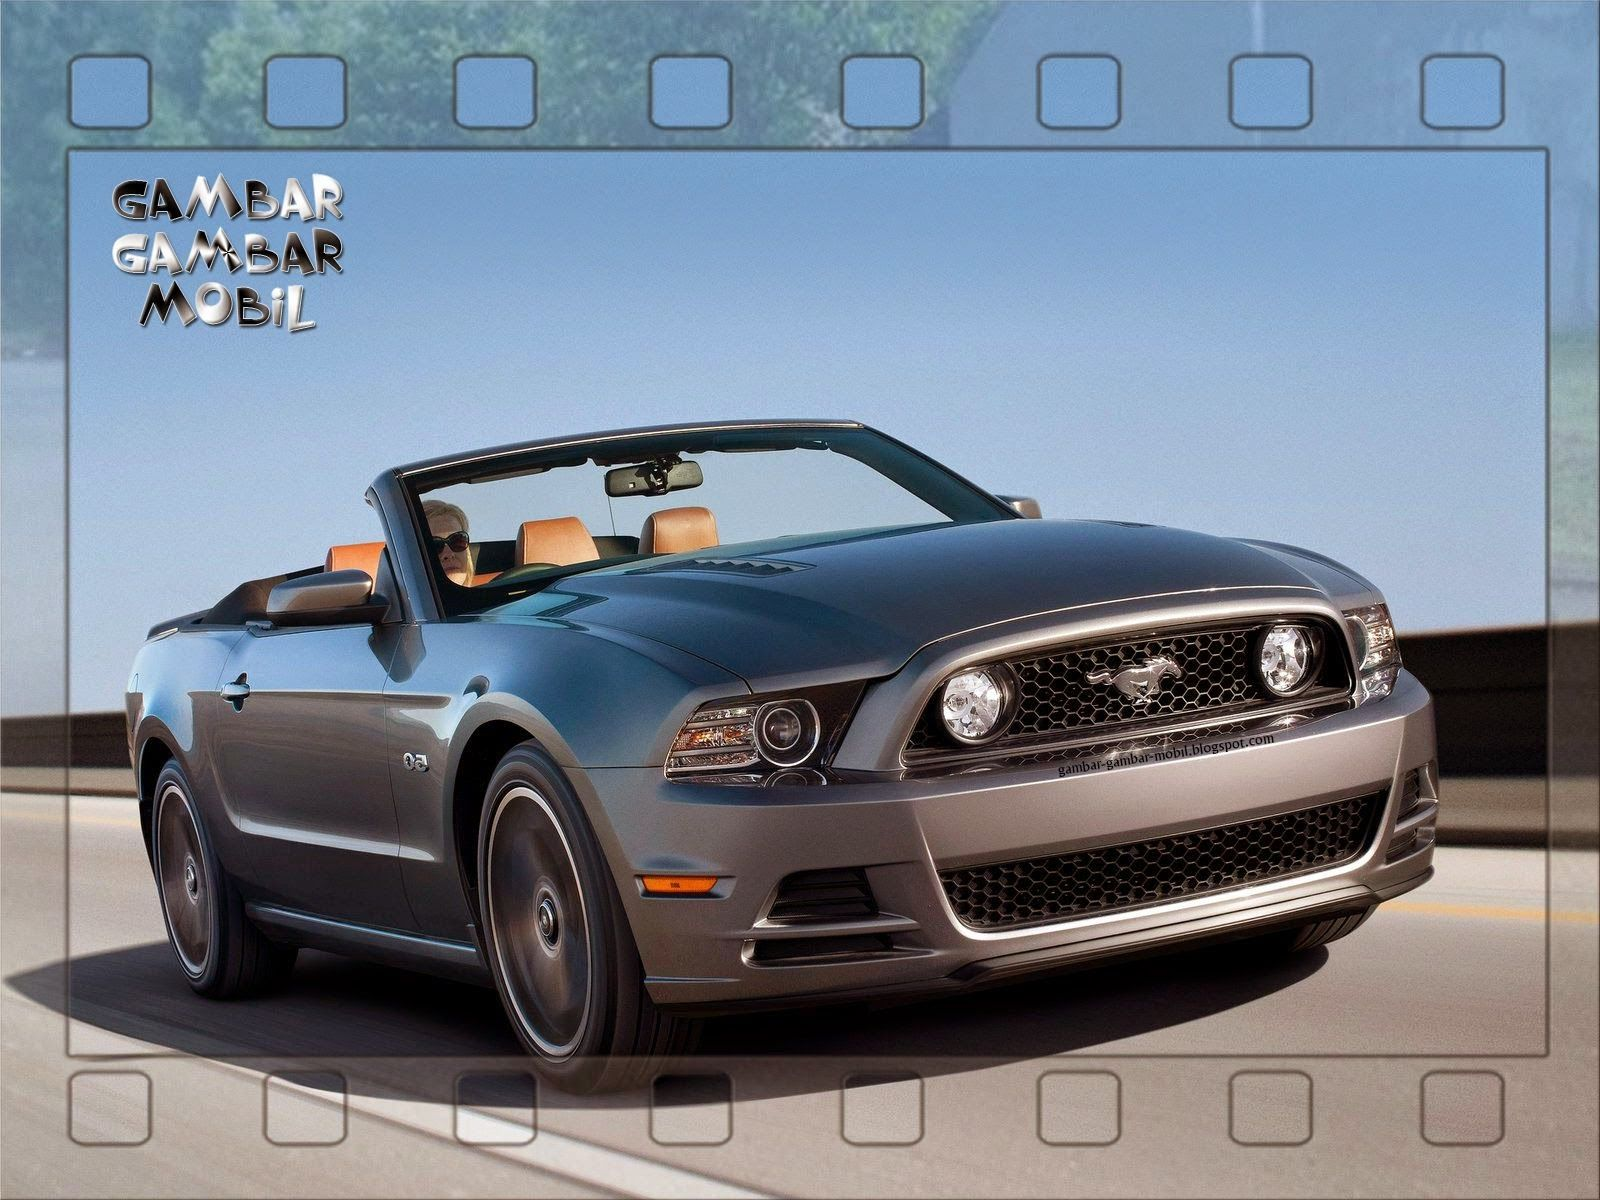 Gambar Mobil Mustang Gambar Gambar Mobil Mobil Mustang Mustang Mobil Ford